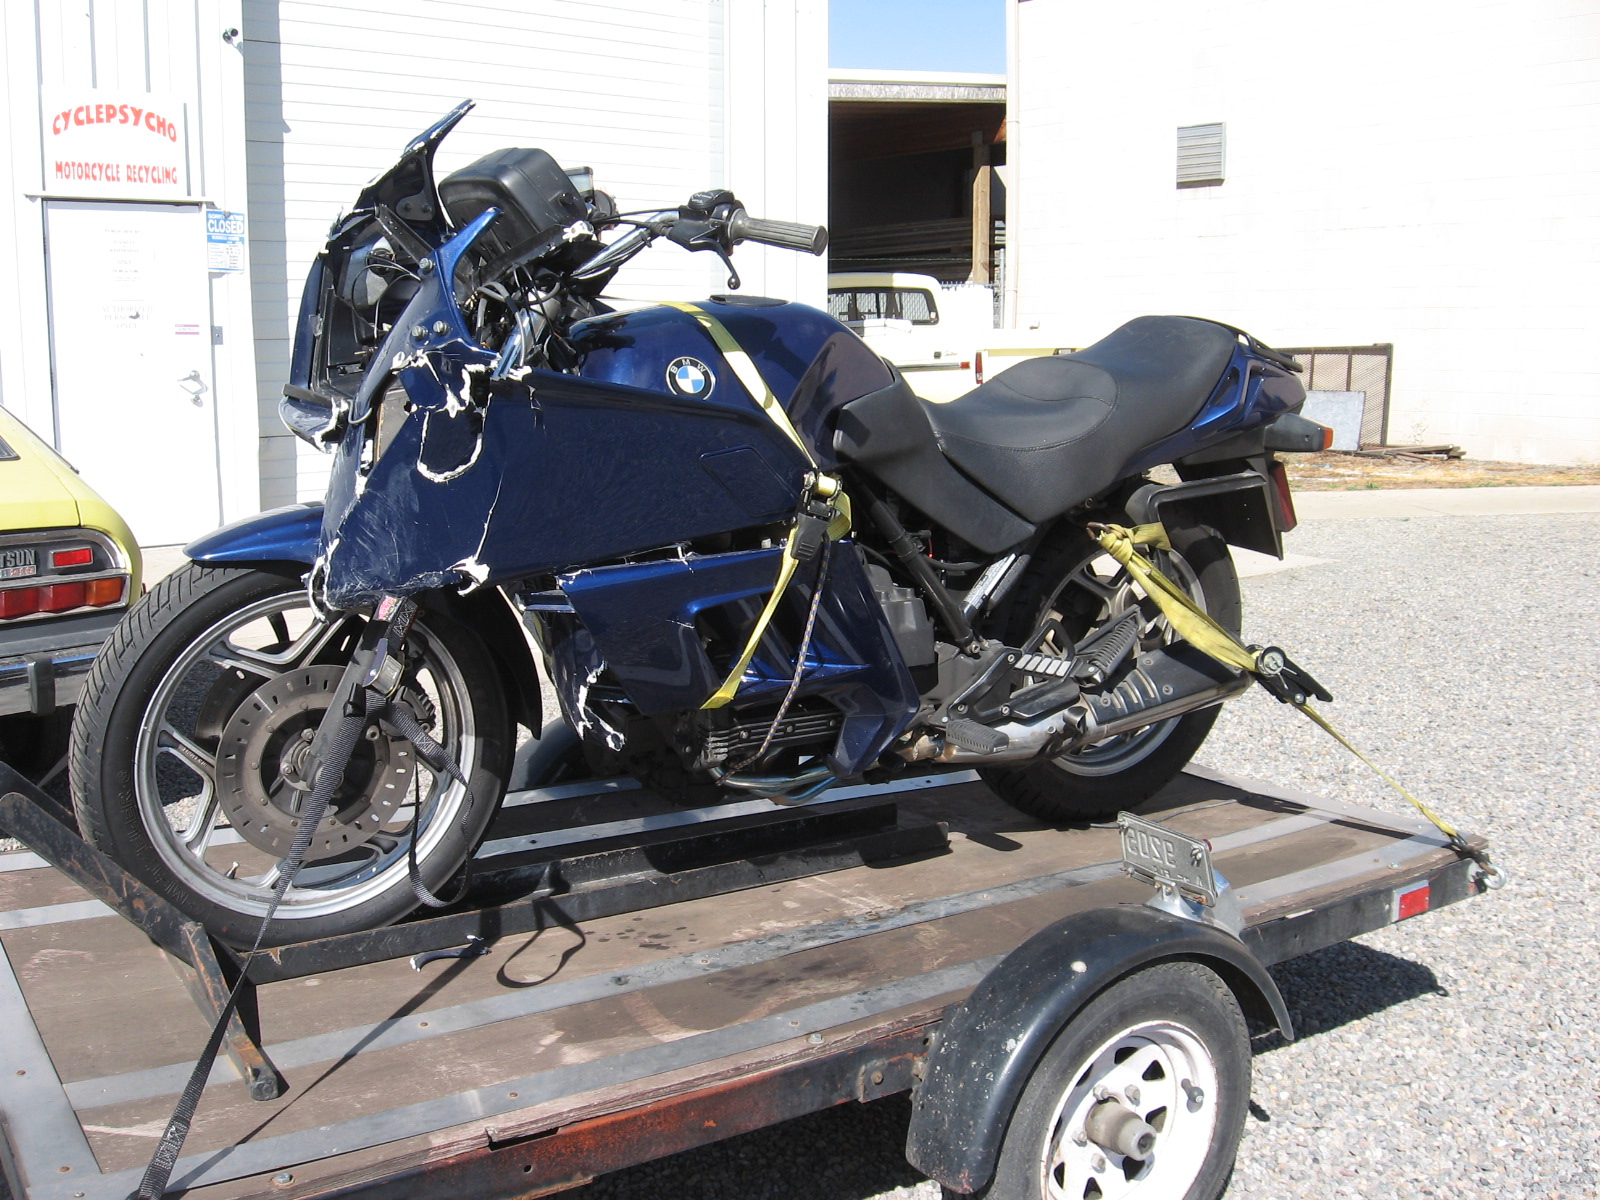 BMW K75RT 1990 images #5119